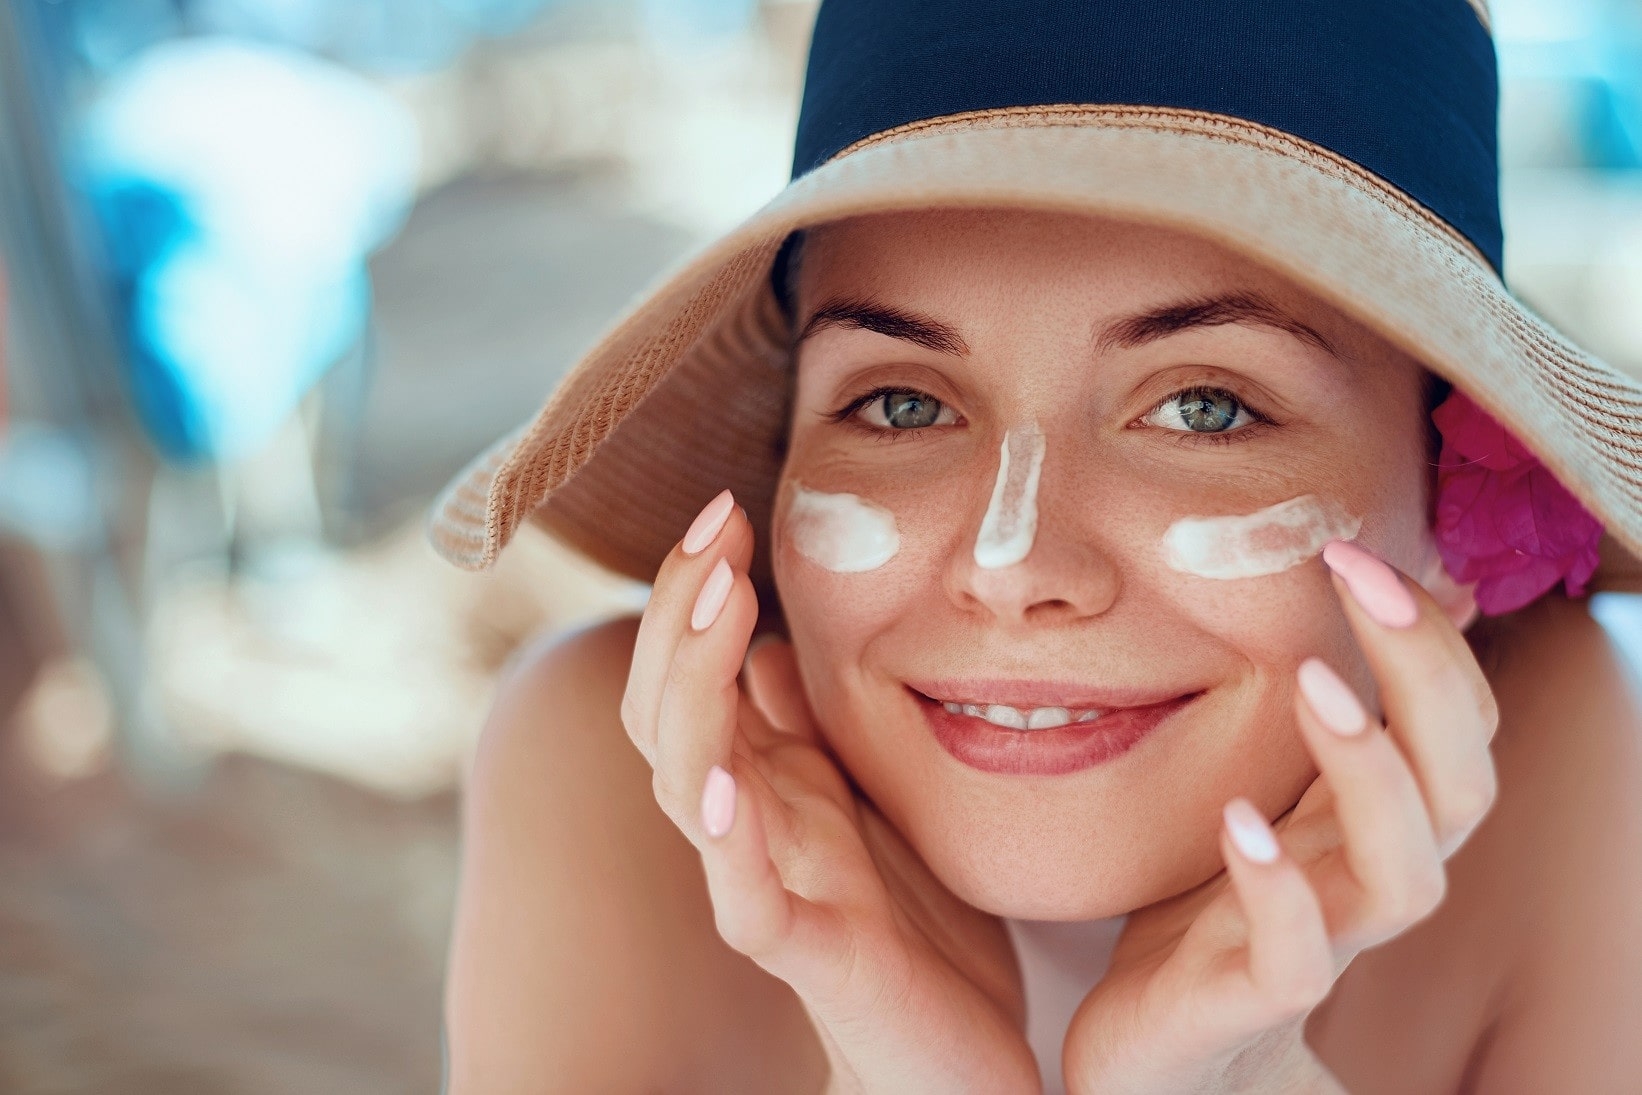 woman wearing a hat with sunscreen on her cheeks.